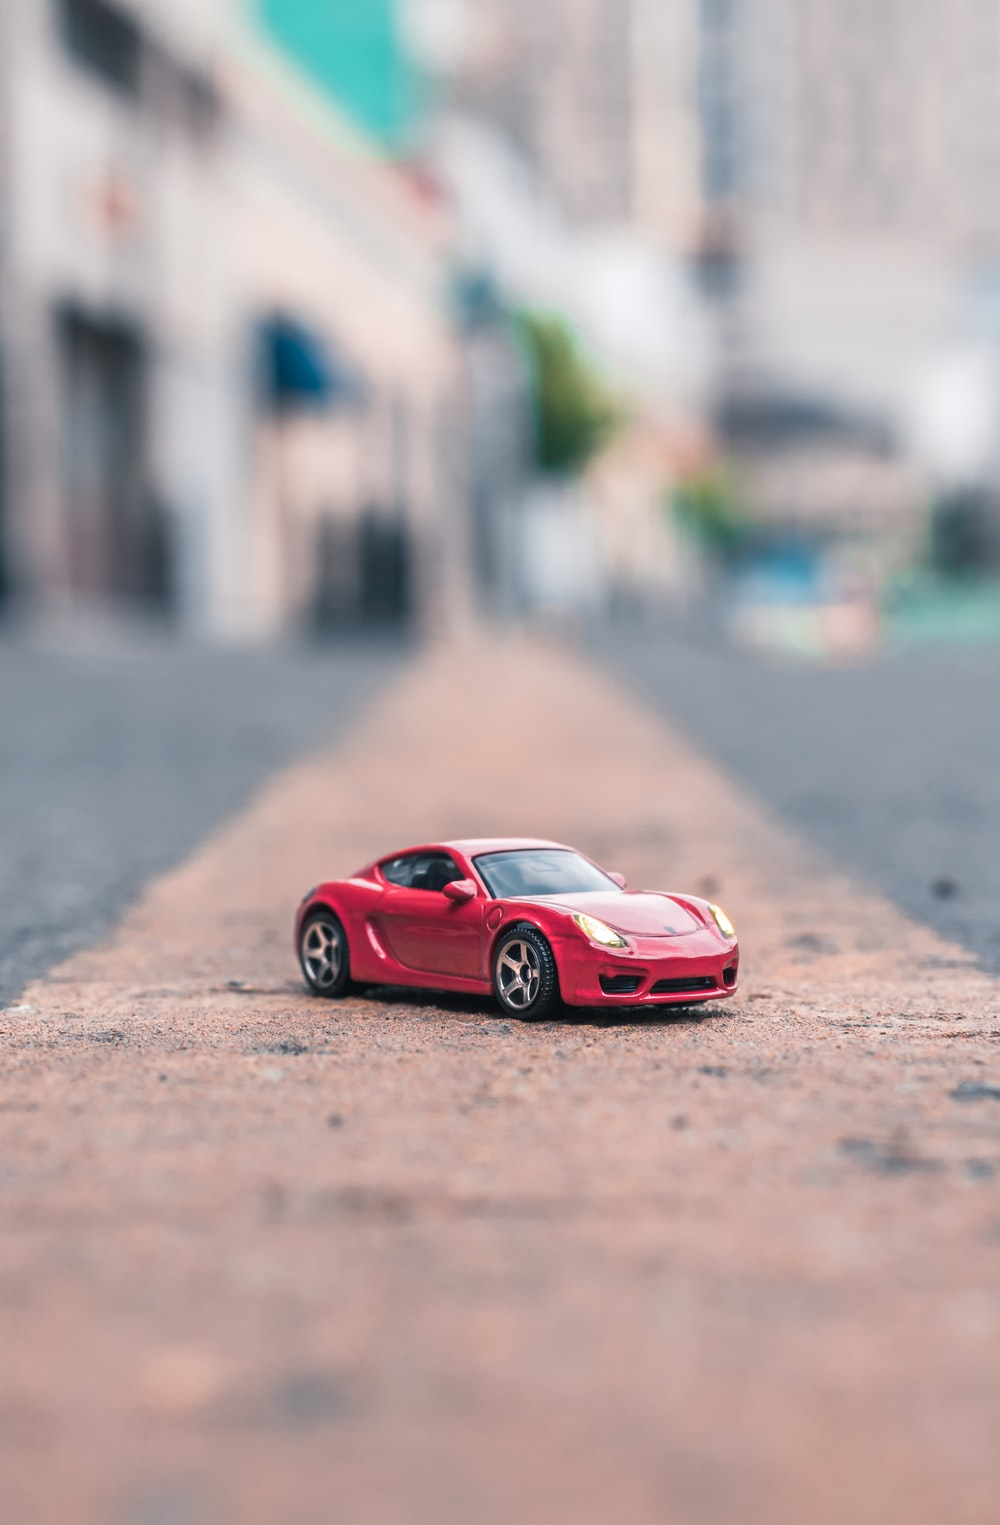 selective focus photography of red coupe scale model on road